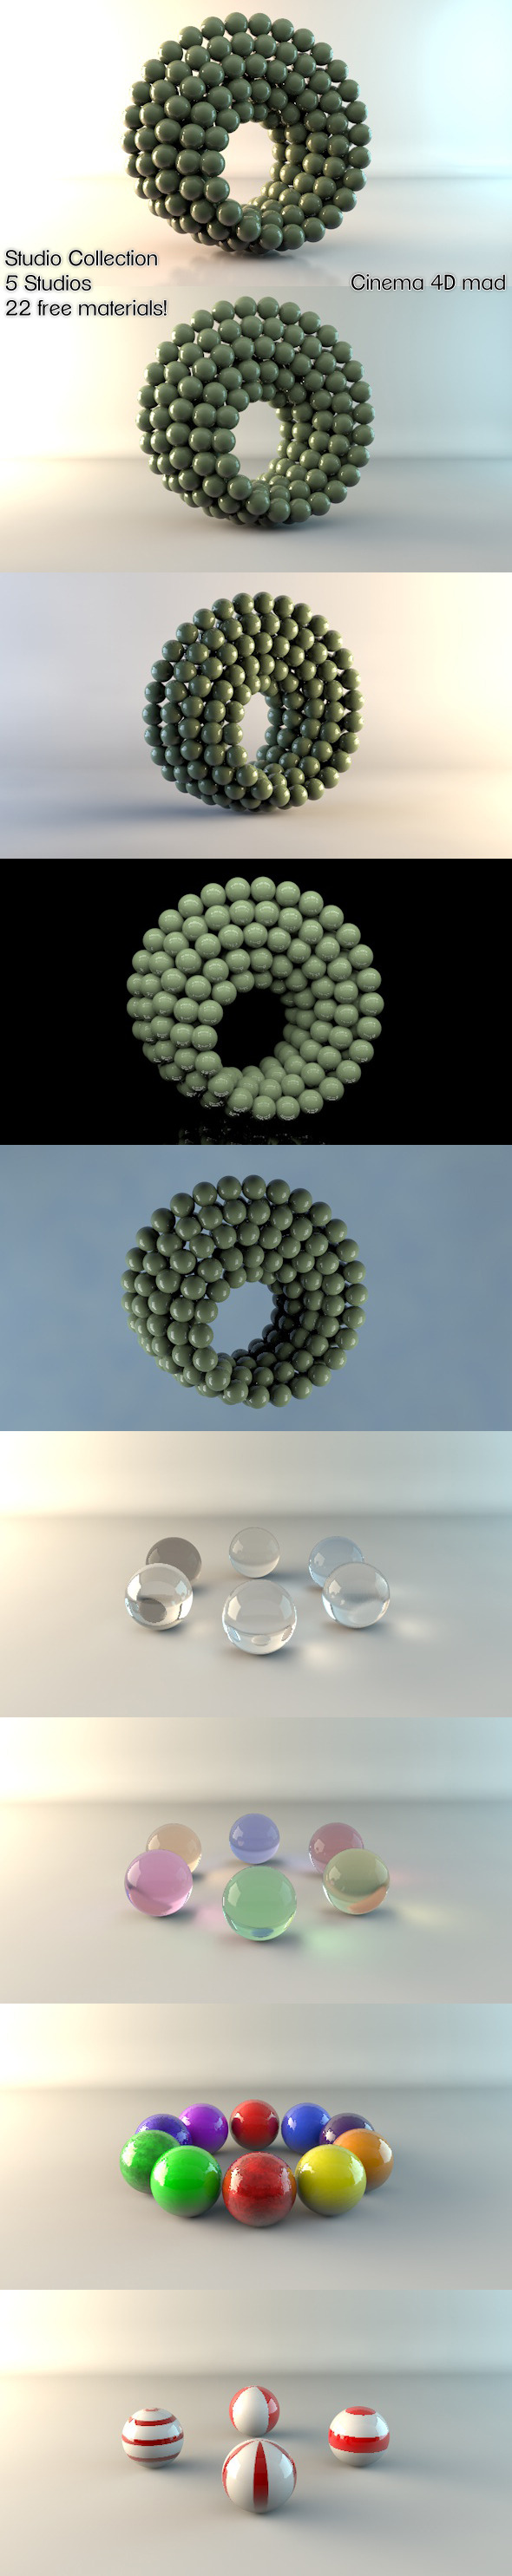 5 Studios & 22 Materials C4D - 3DOcean Item for Sale